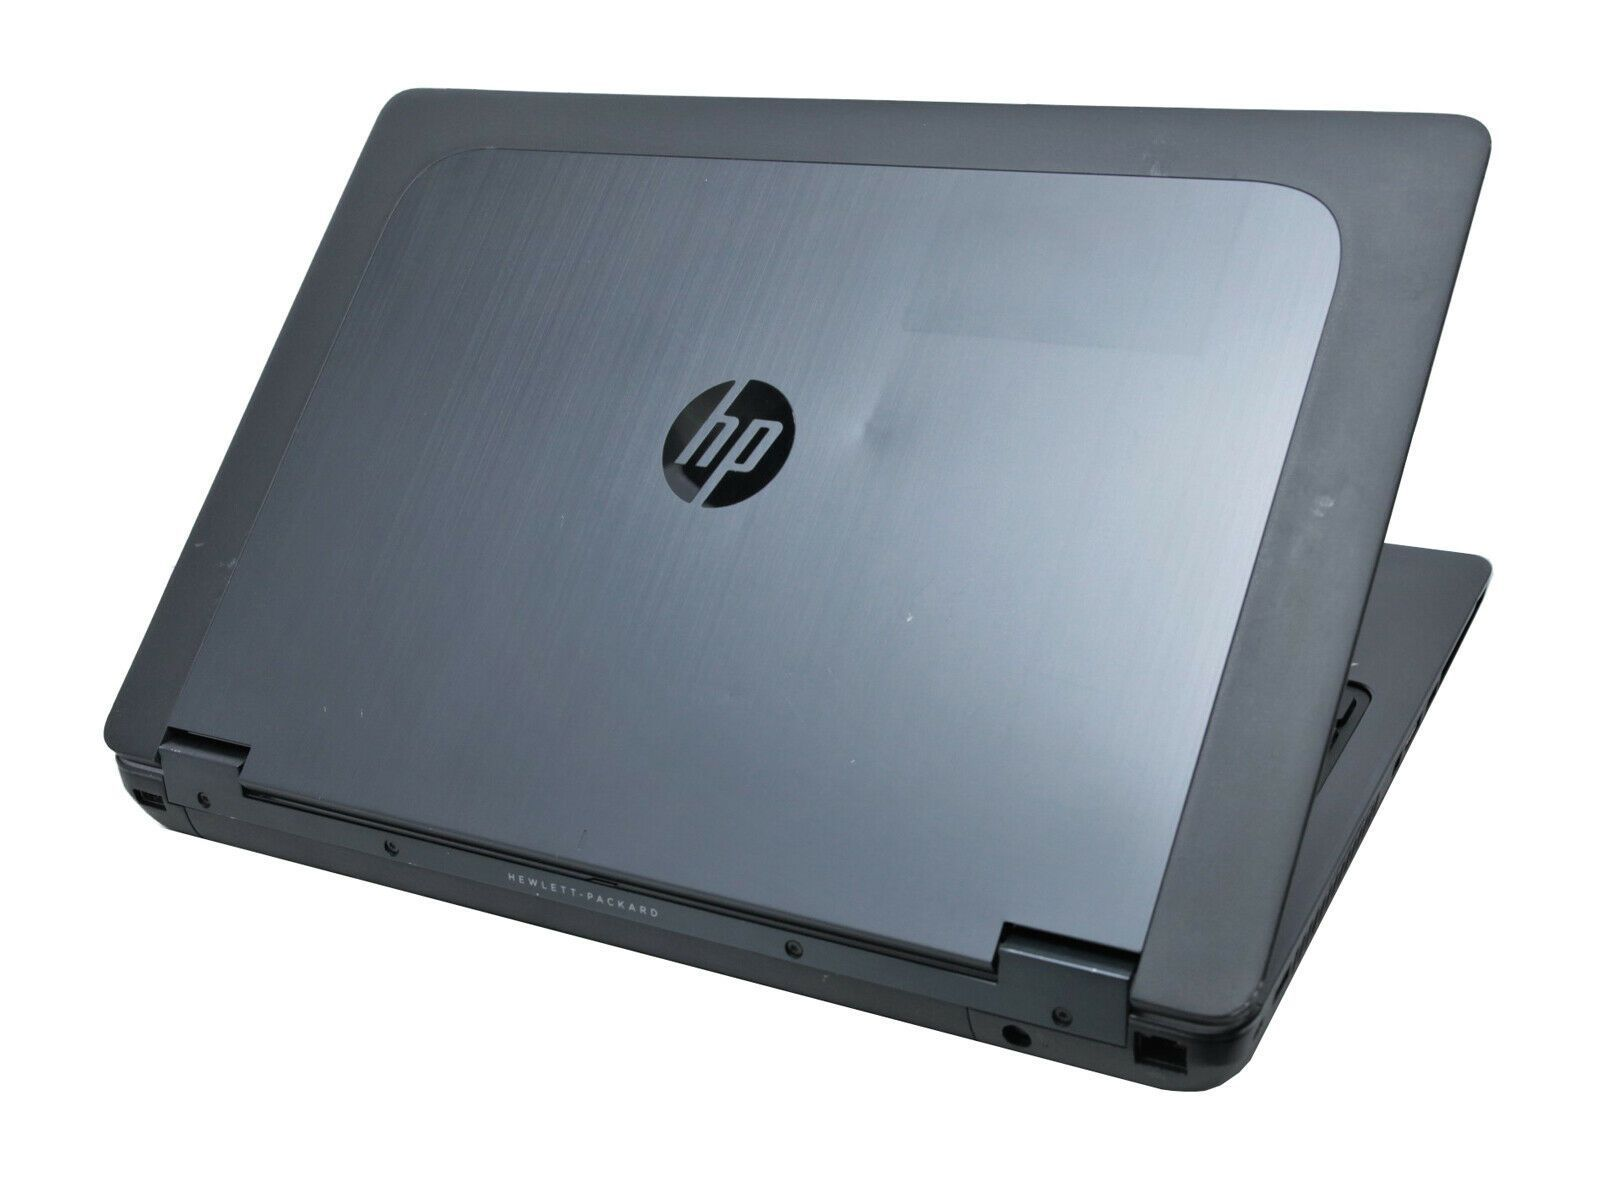 HP ZBook 15 G2 CAD Laptop: 32GB RAM, Core i7, 256GB SSD+ HDD, Warranty, VAT - CruiseTech